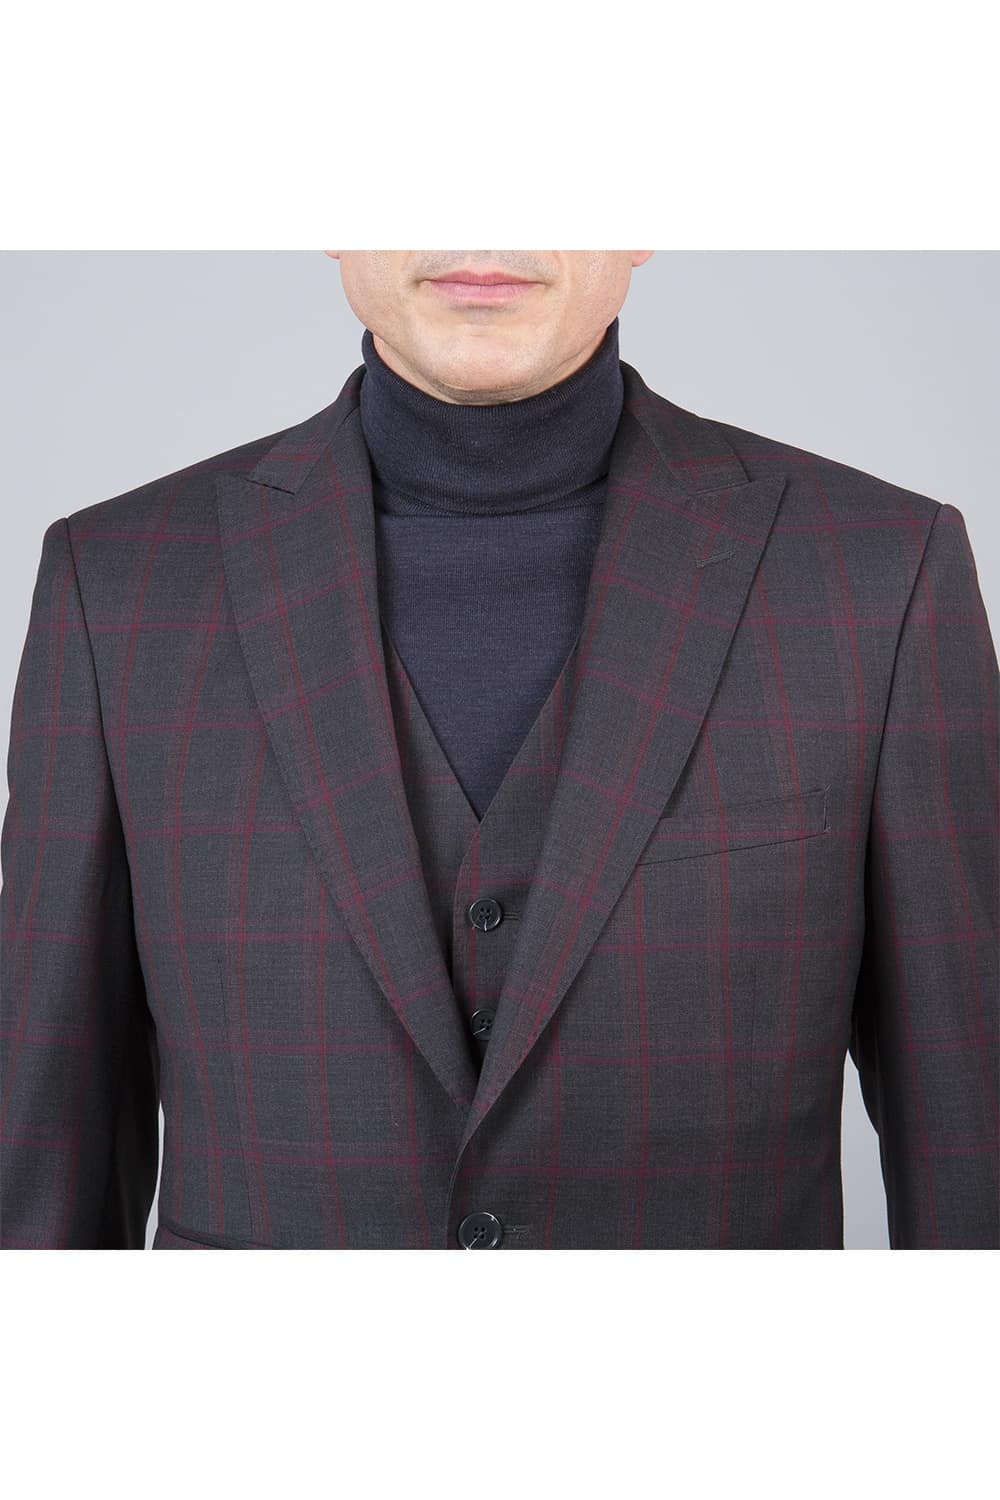 homme revers veston costume carreaux 3p paris